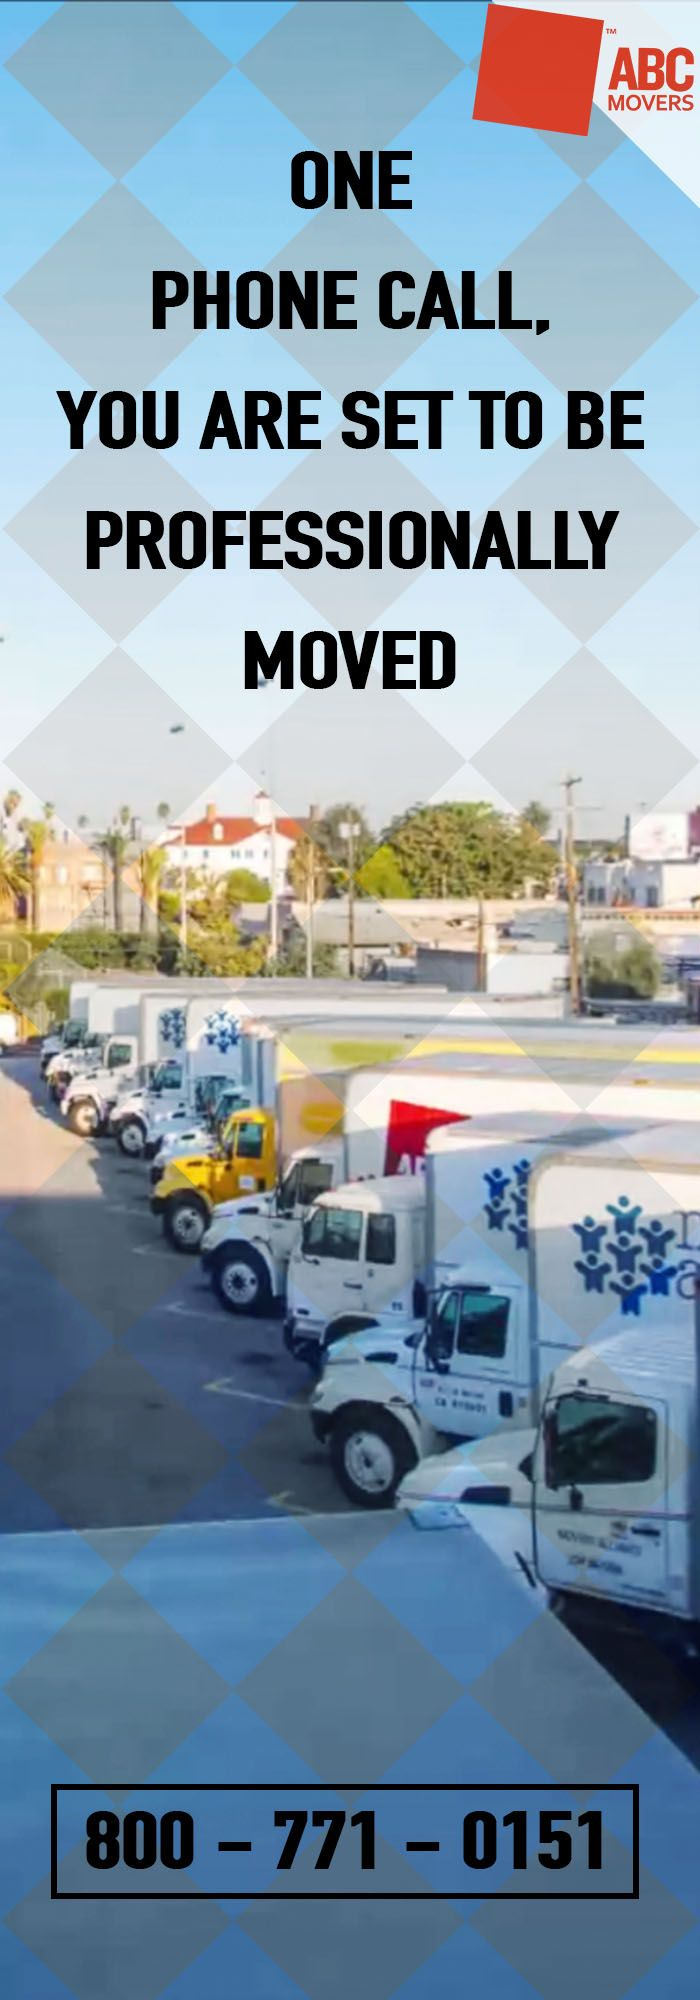 Professional moving service is just one phone call away. Get your move planned and executed by ABC Movers.